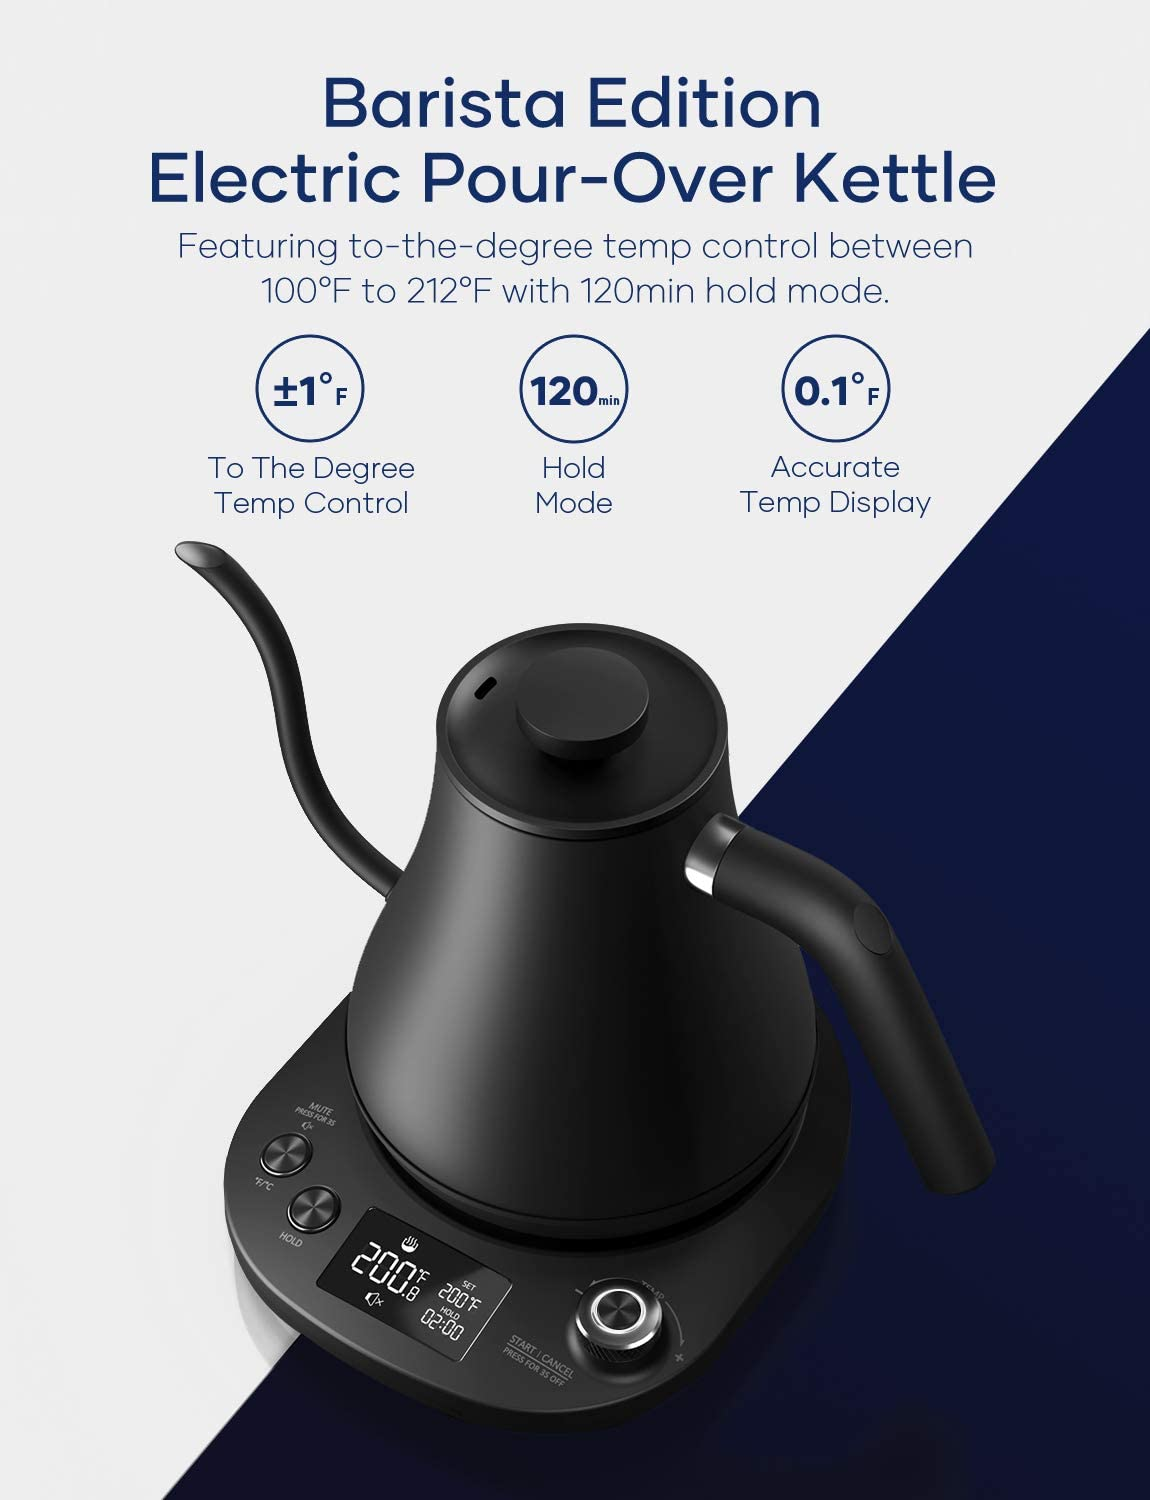 Aicook Electric Gooseneck Kettle Temperature Control, Pour Over Kettle for Coffee and Tea, 100% Stainless Steel Inner Lid and Bottom, 1200W Rapid Heating, 0.8L, Matte Black: Kitchen & Dining